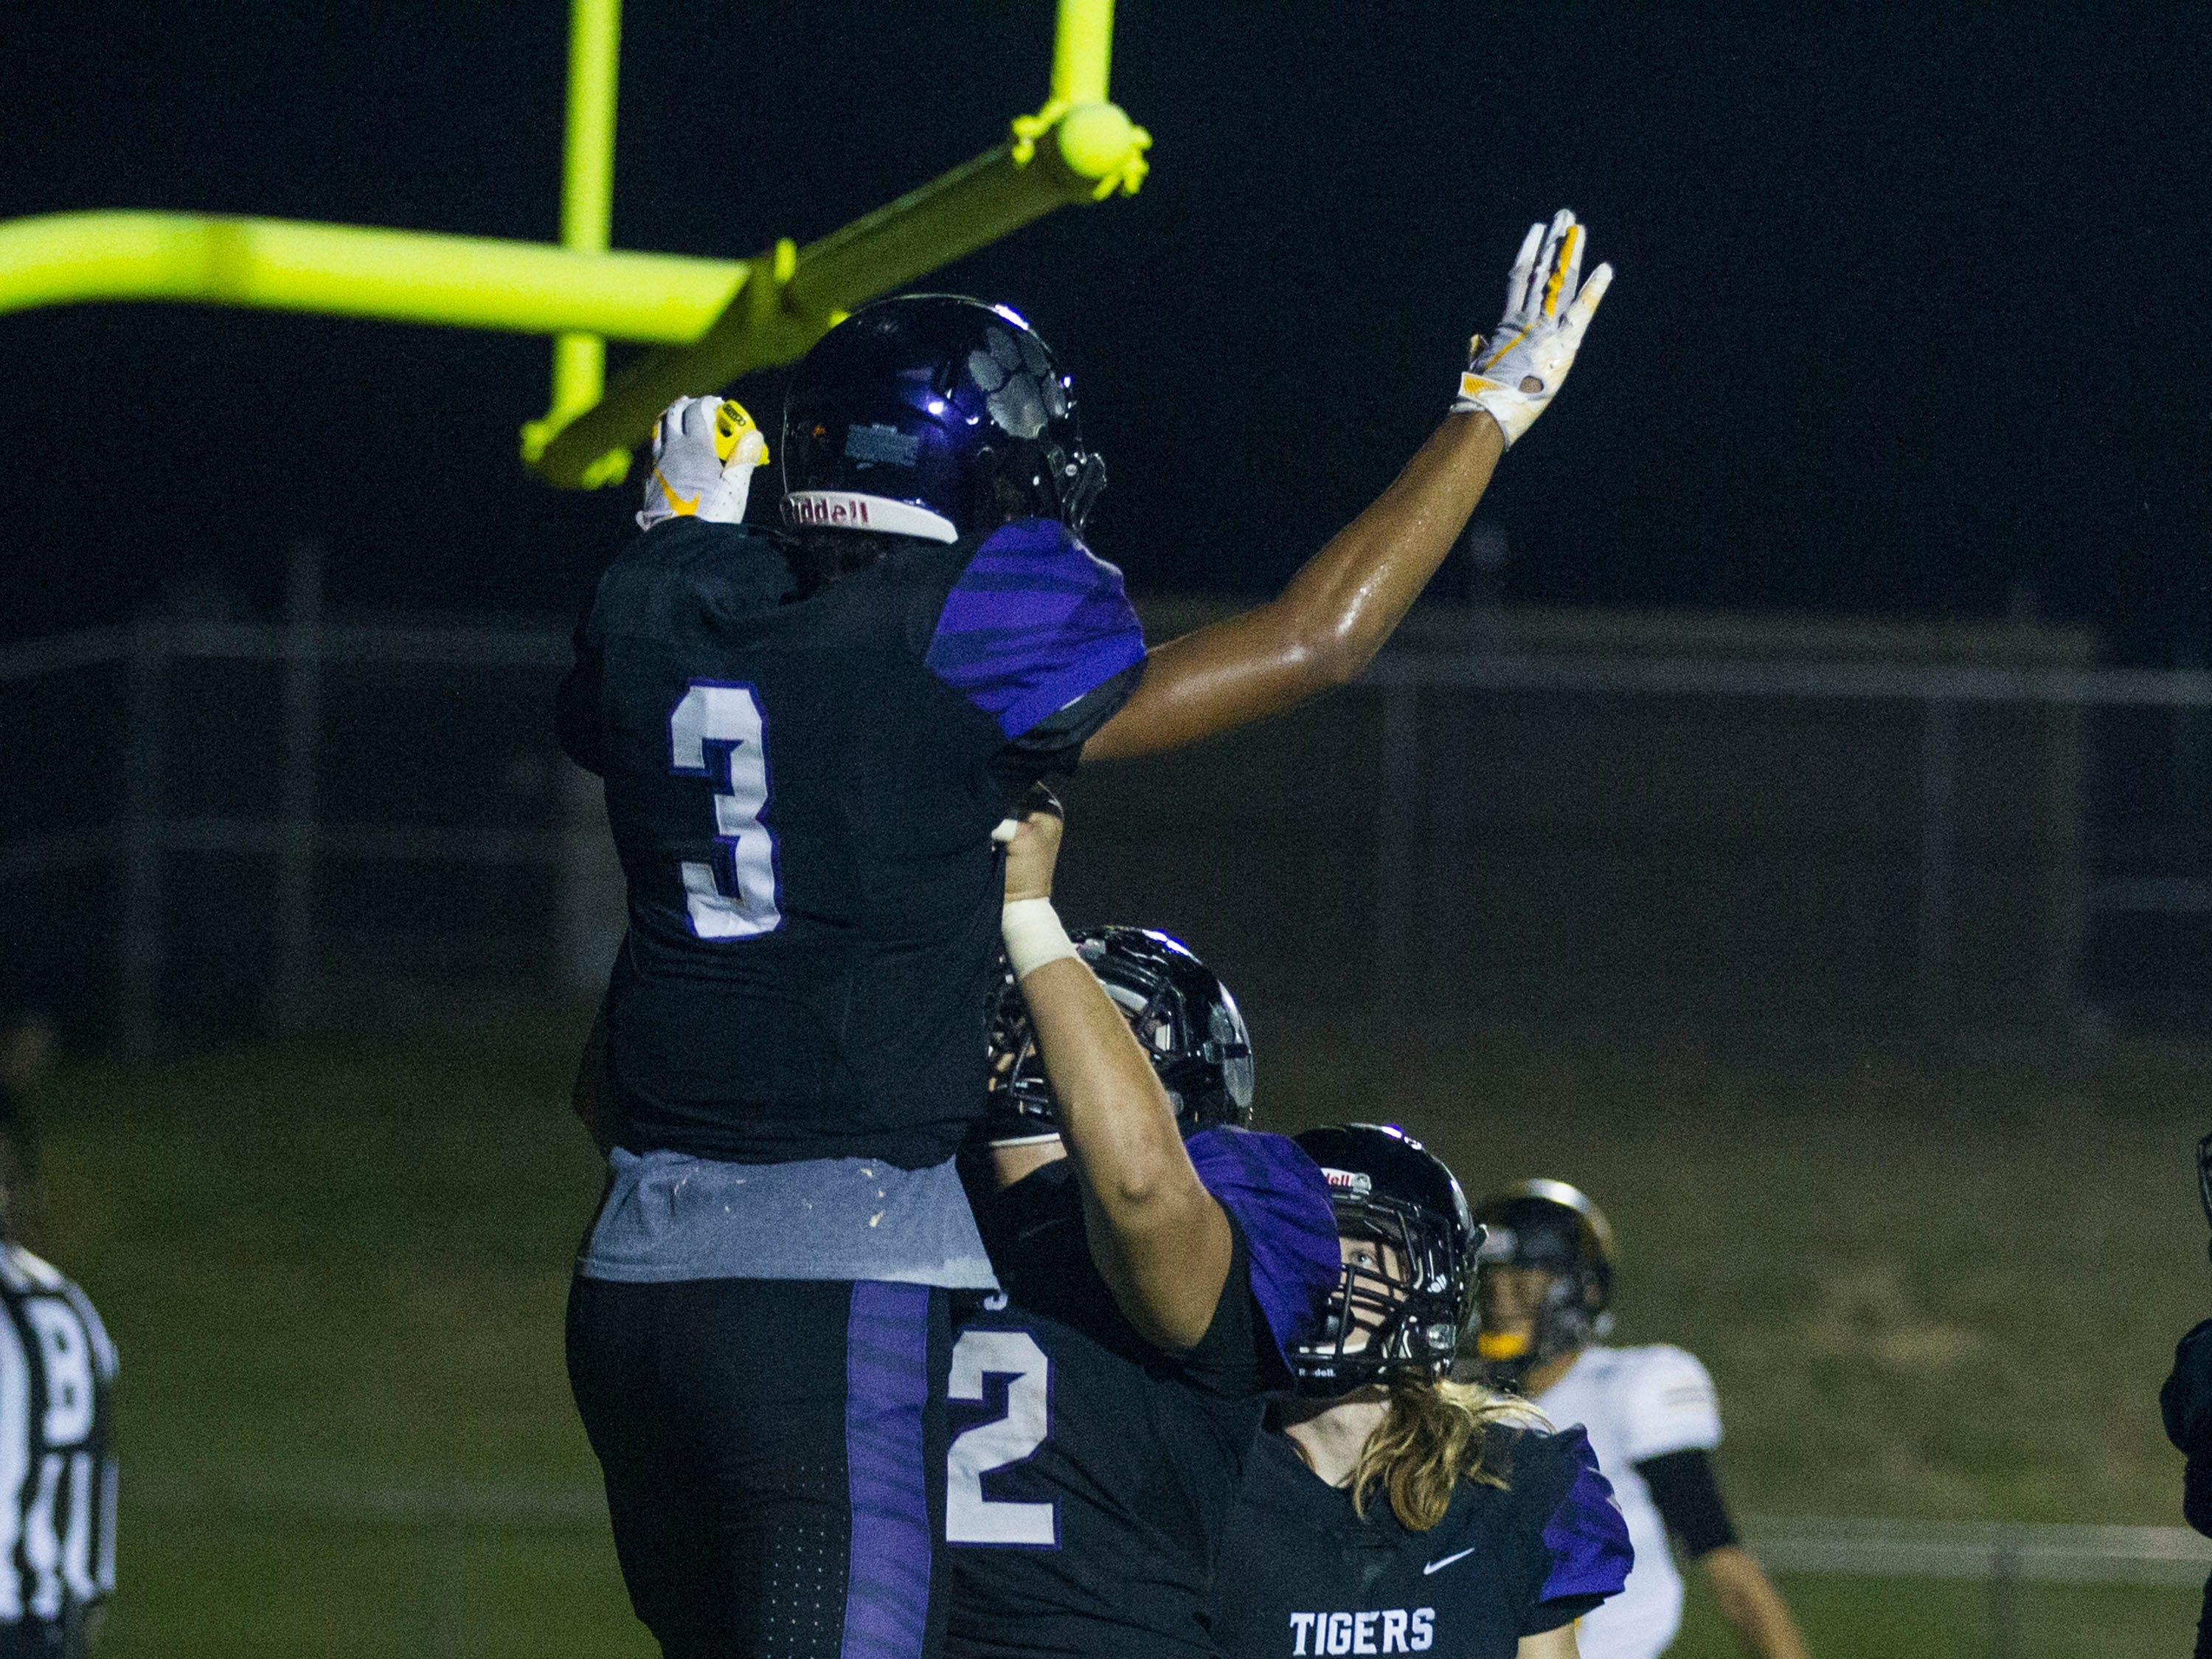 Millennium's Jaelon Taylor gets lifted in the air by teammate Jalan Early after scoring against Goldwater during their game in Goodyear Friday, Sept. 28, 2018. #azhsfb